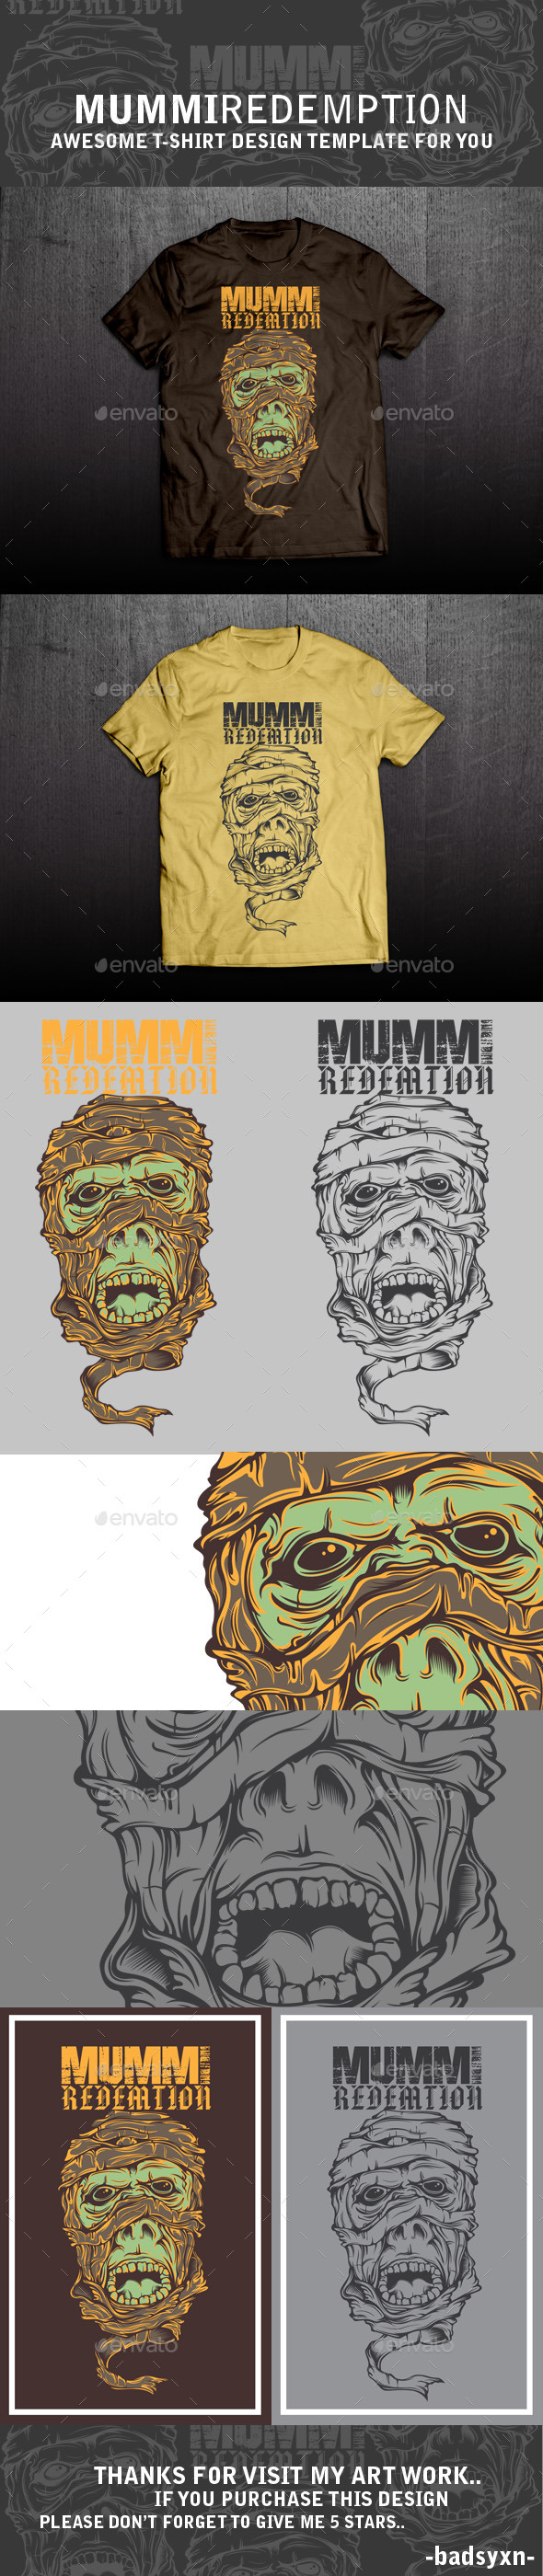 GraphicRiver Mummi t-shirt template 10781883